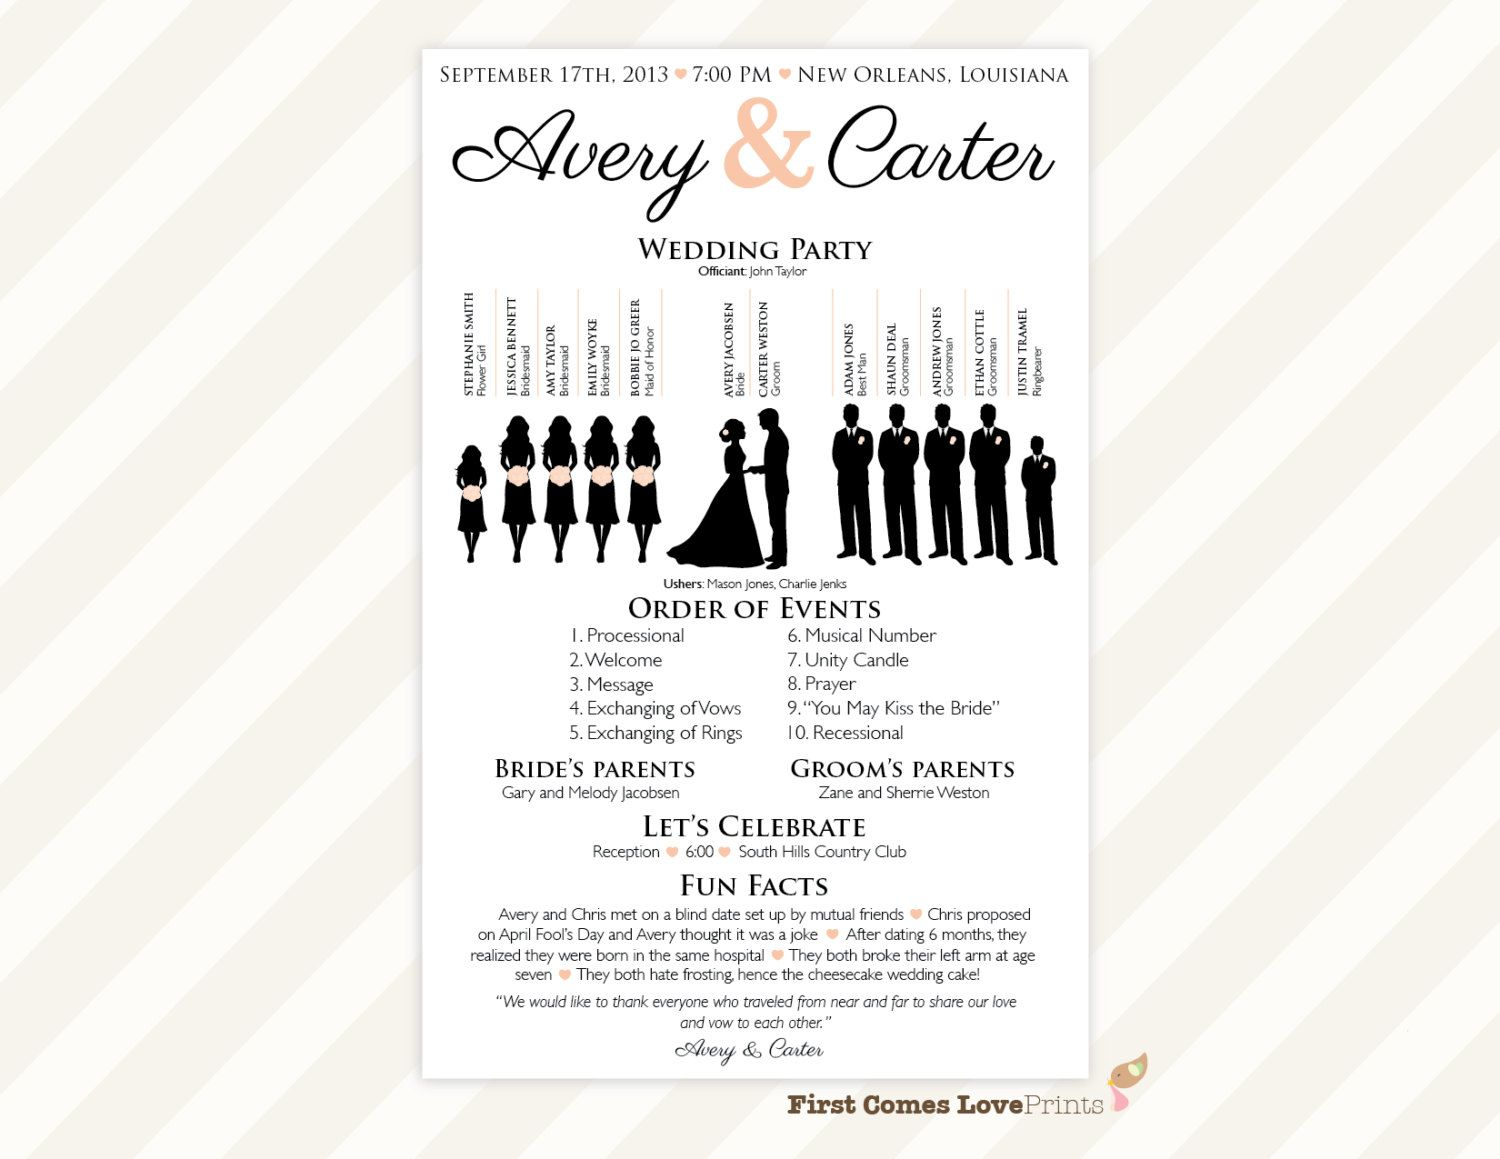 17 Best images about Wedding programs on Pinterest | Program ...